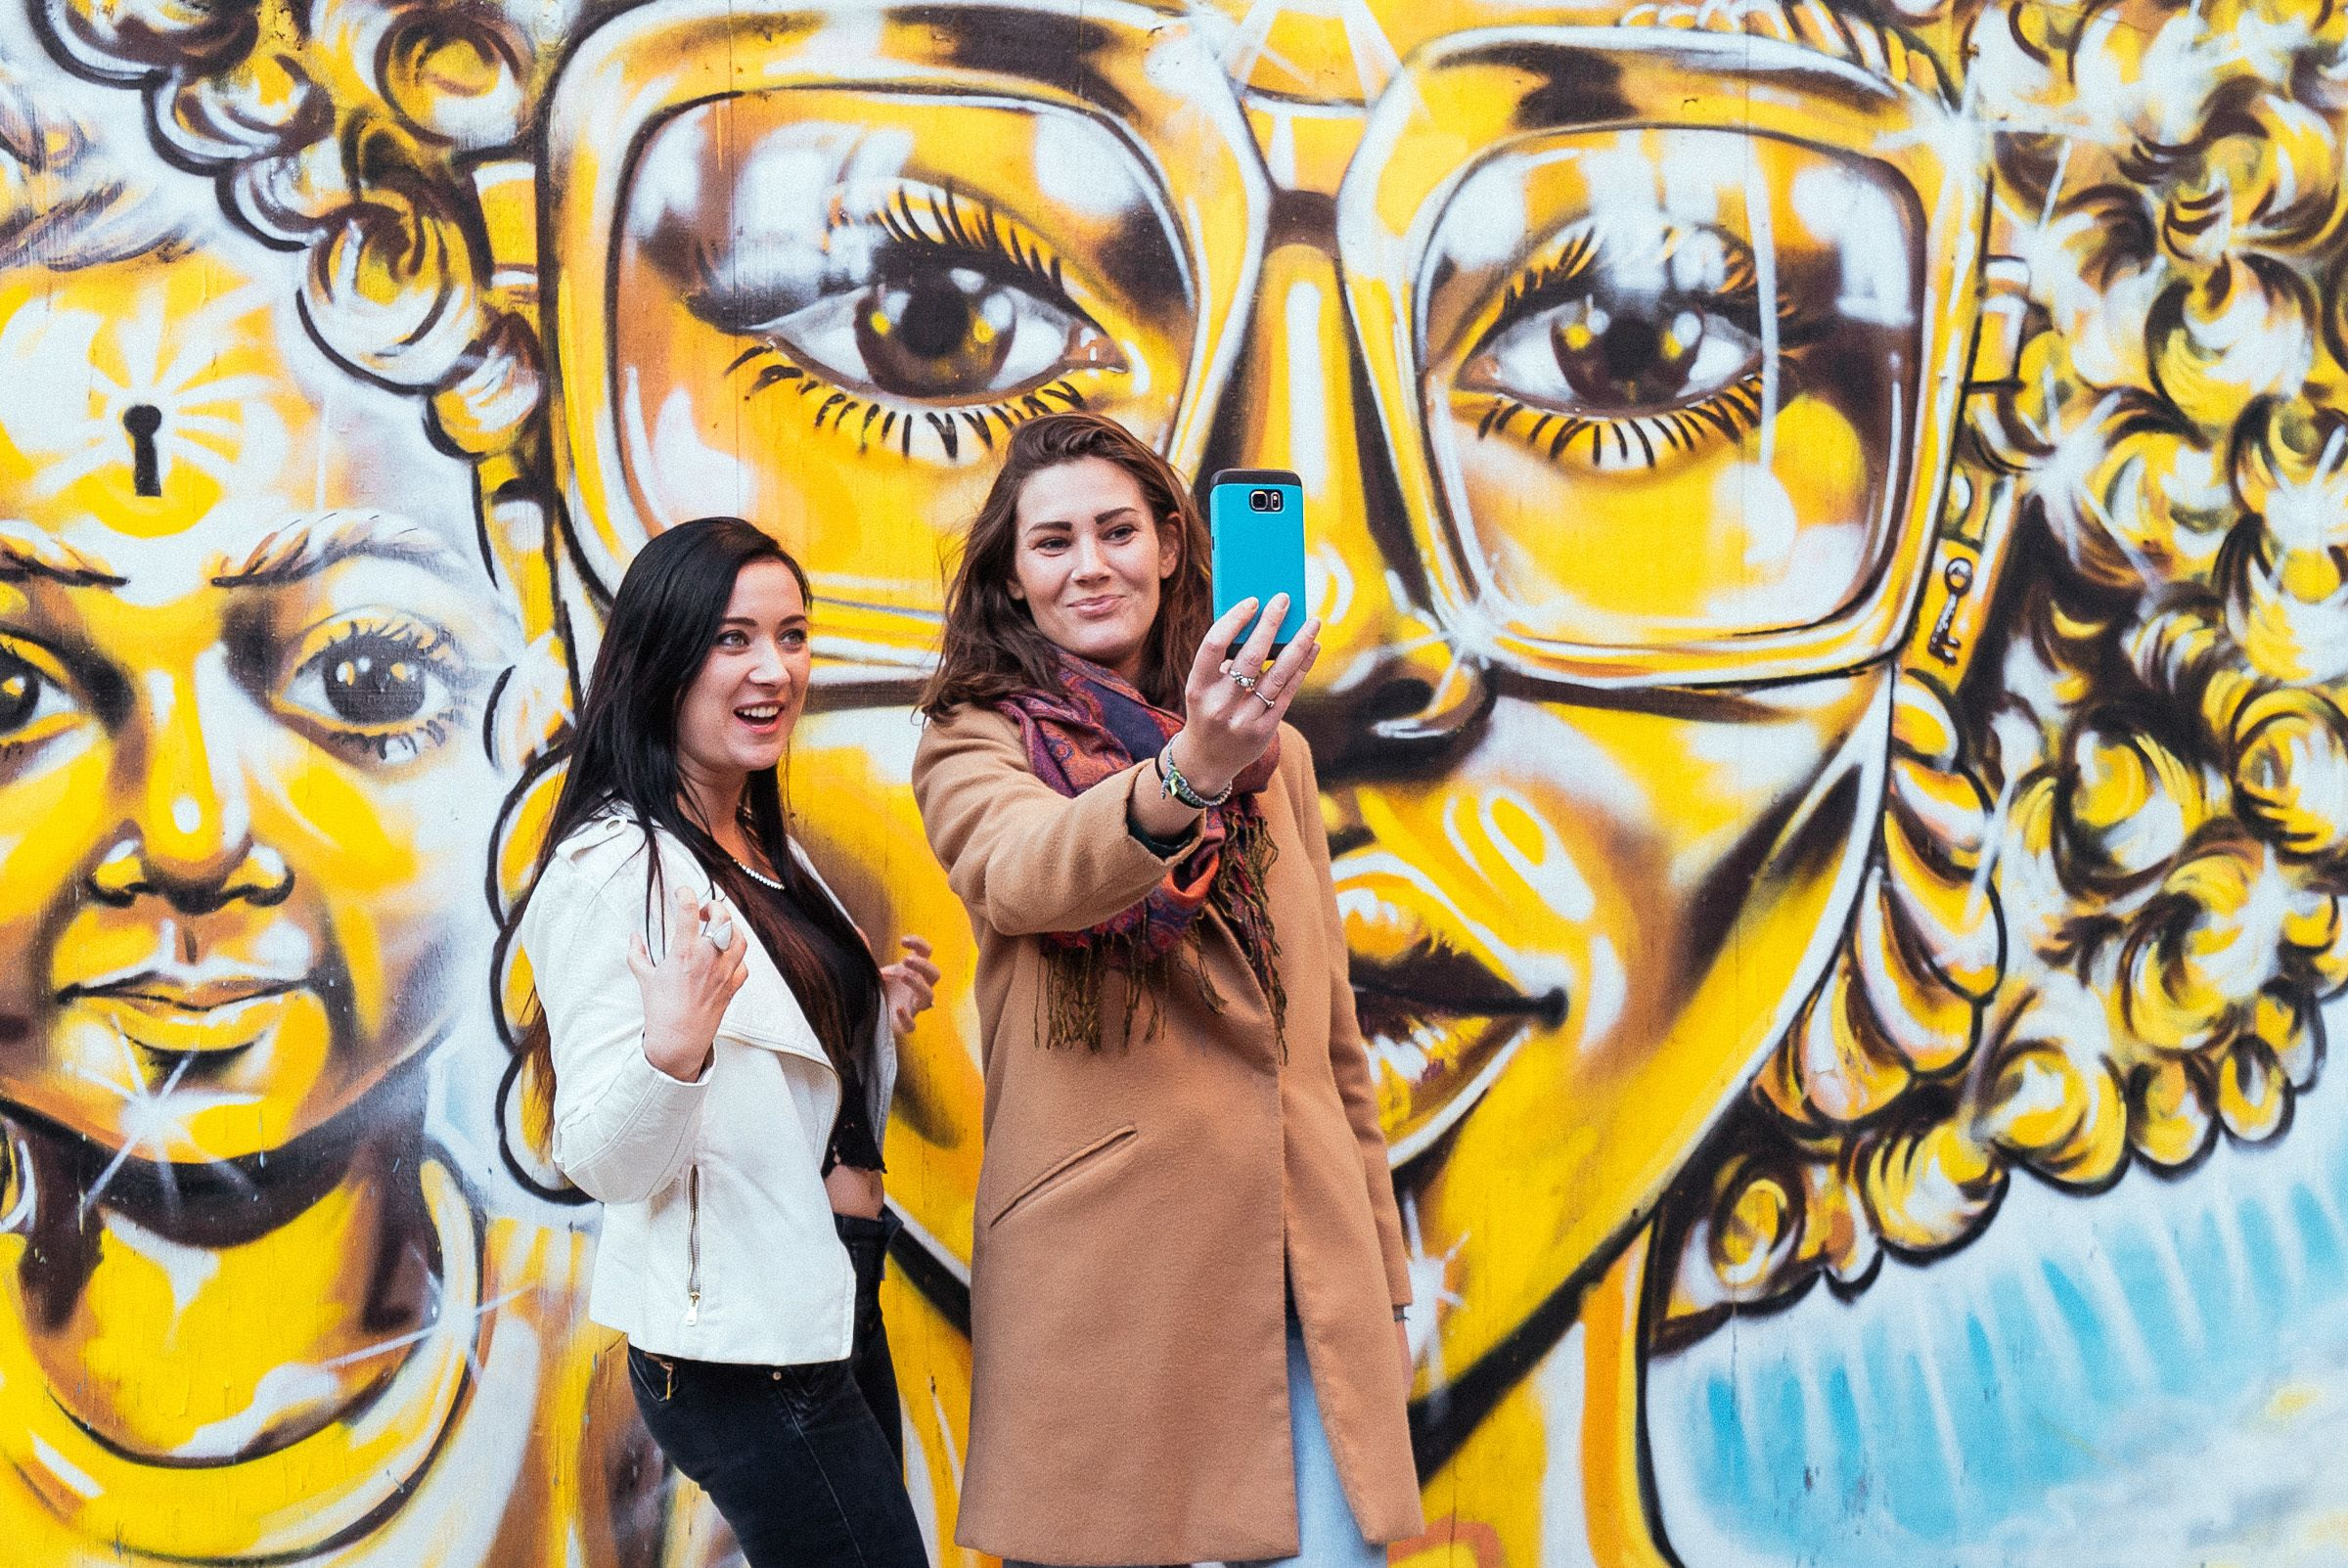 Two people taking a selfie with street art